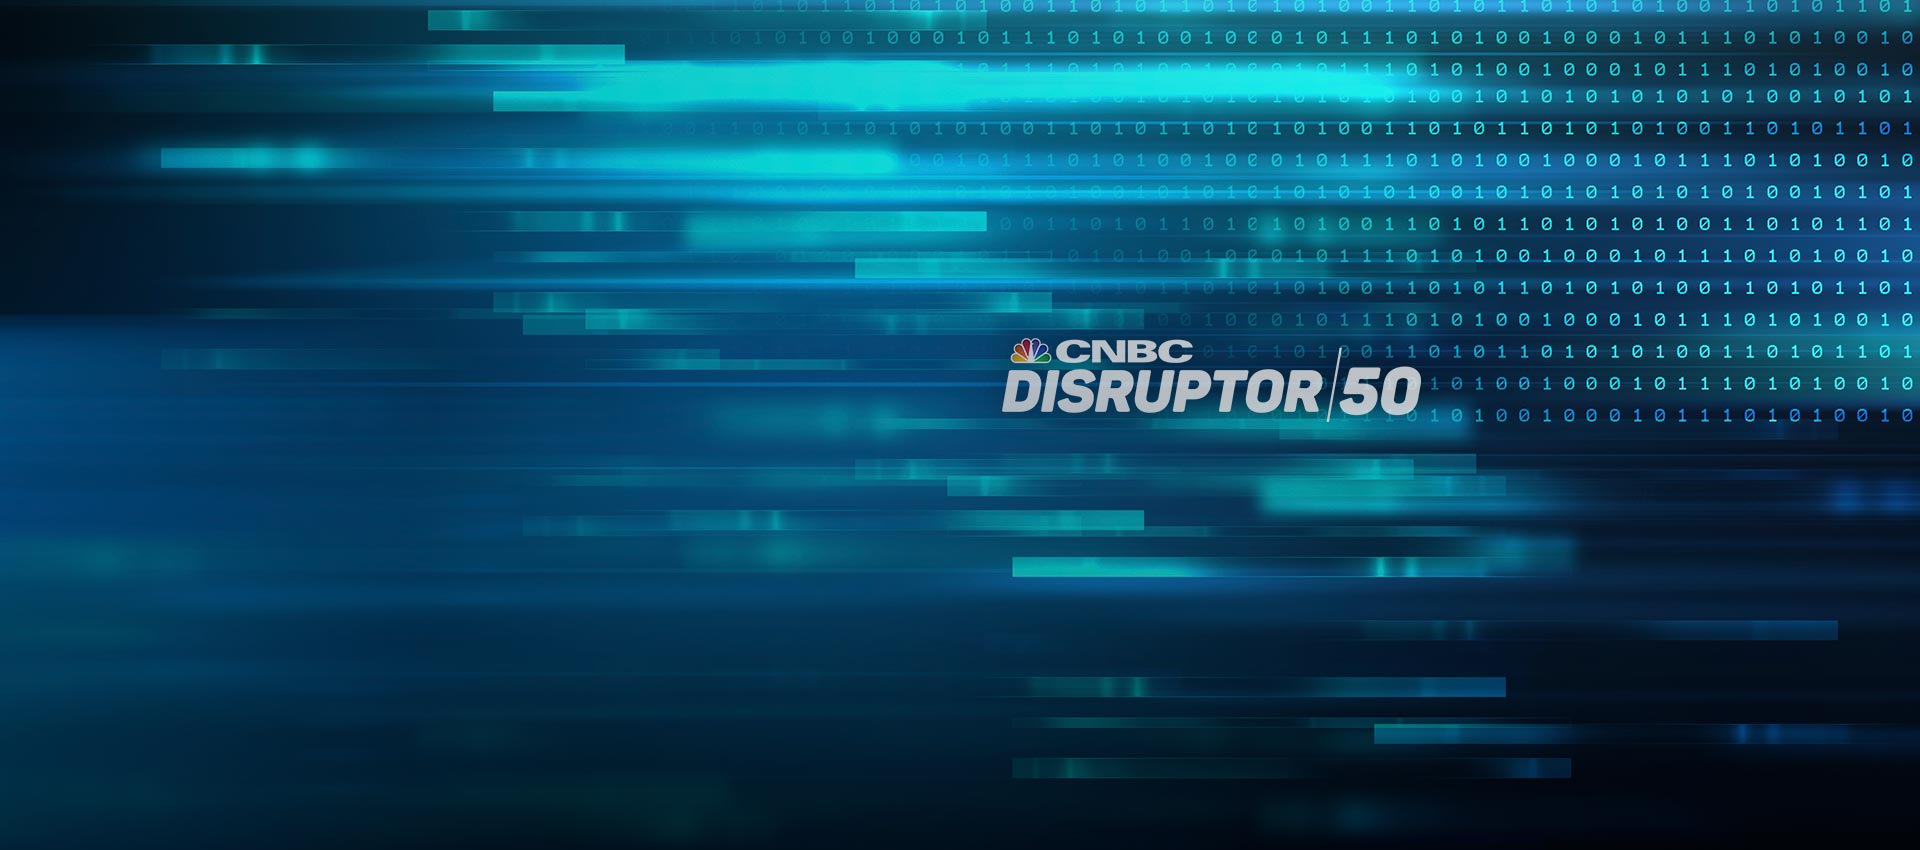 C3.ai CEO Tom Siebel spoke at the CNBC Disruptor 50 Enterprise Dinner